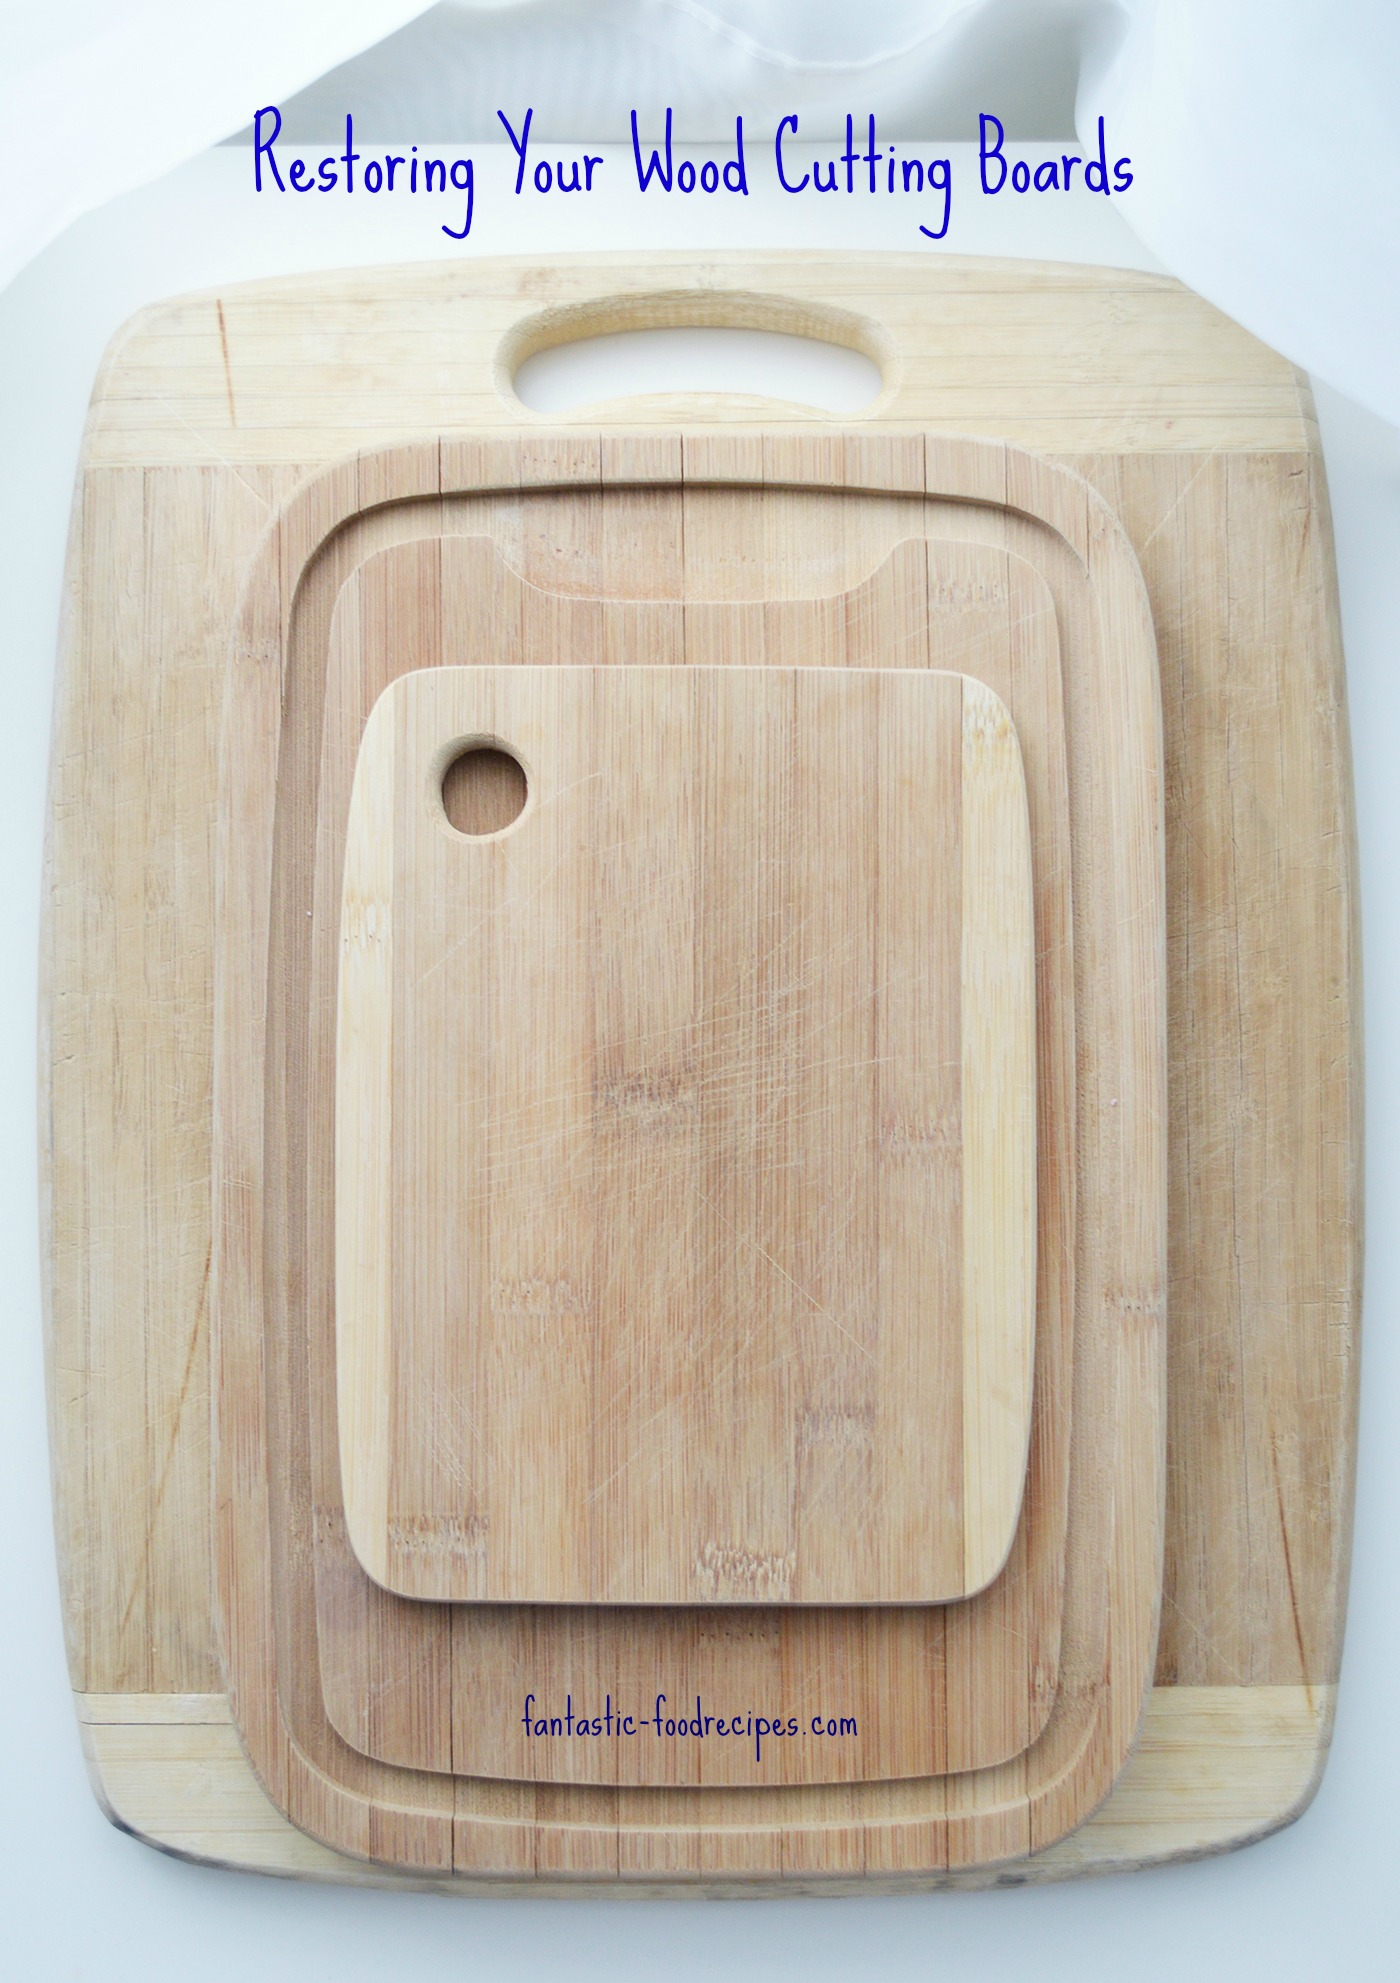 Restoring Wood Cutting Boards 1